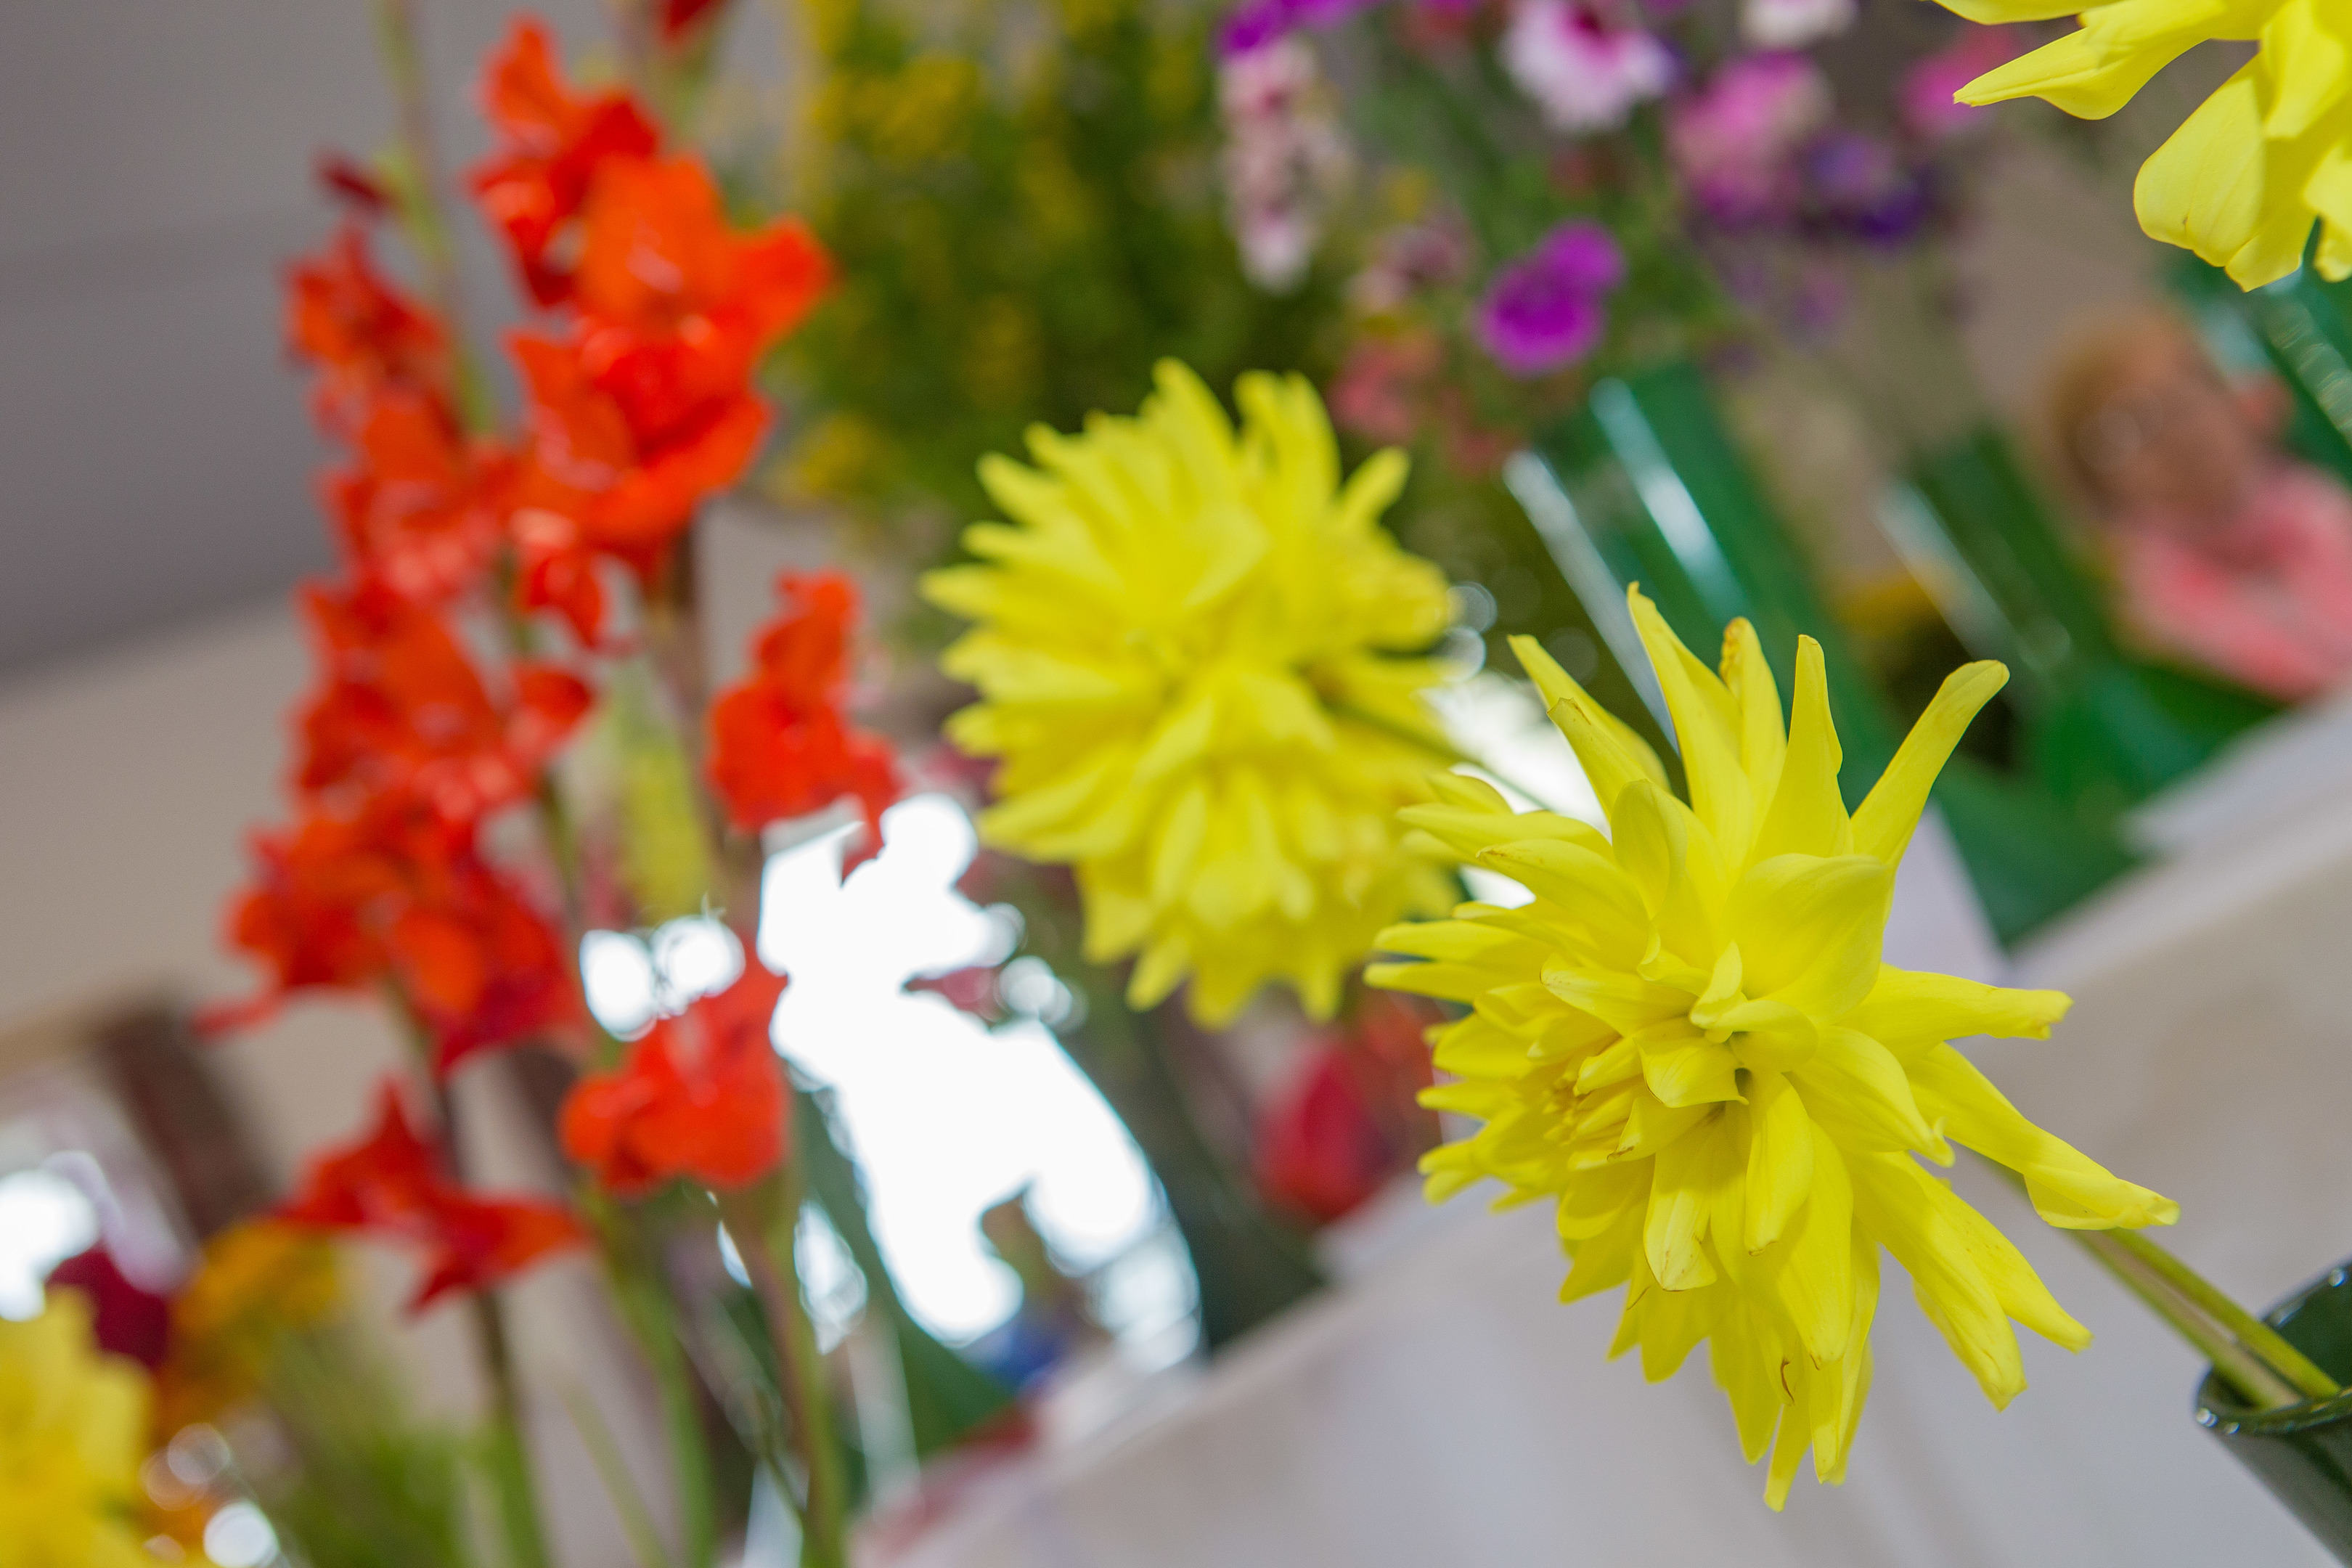 Kingsbarns and Letham hosted their annual flower shows